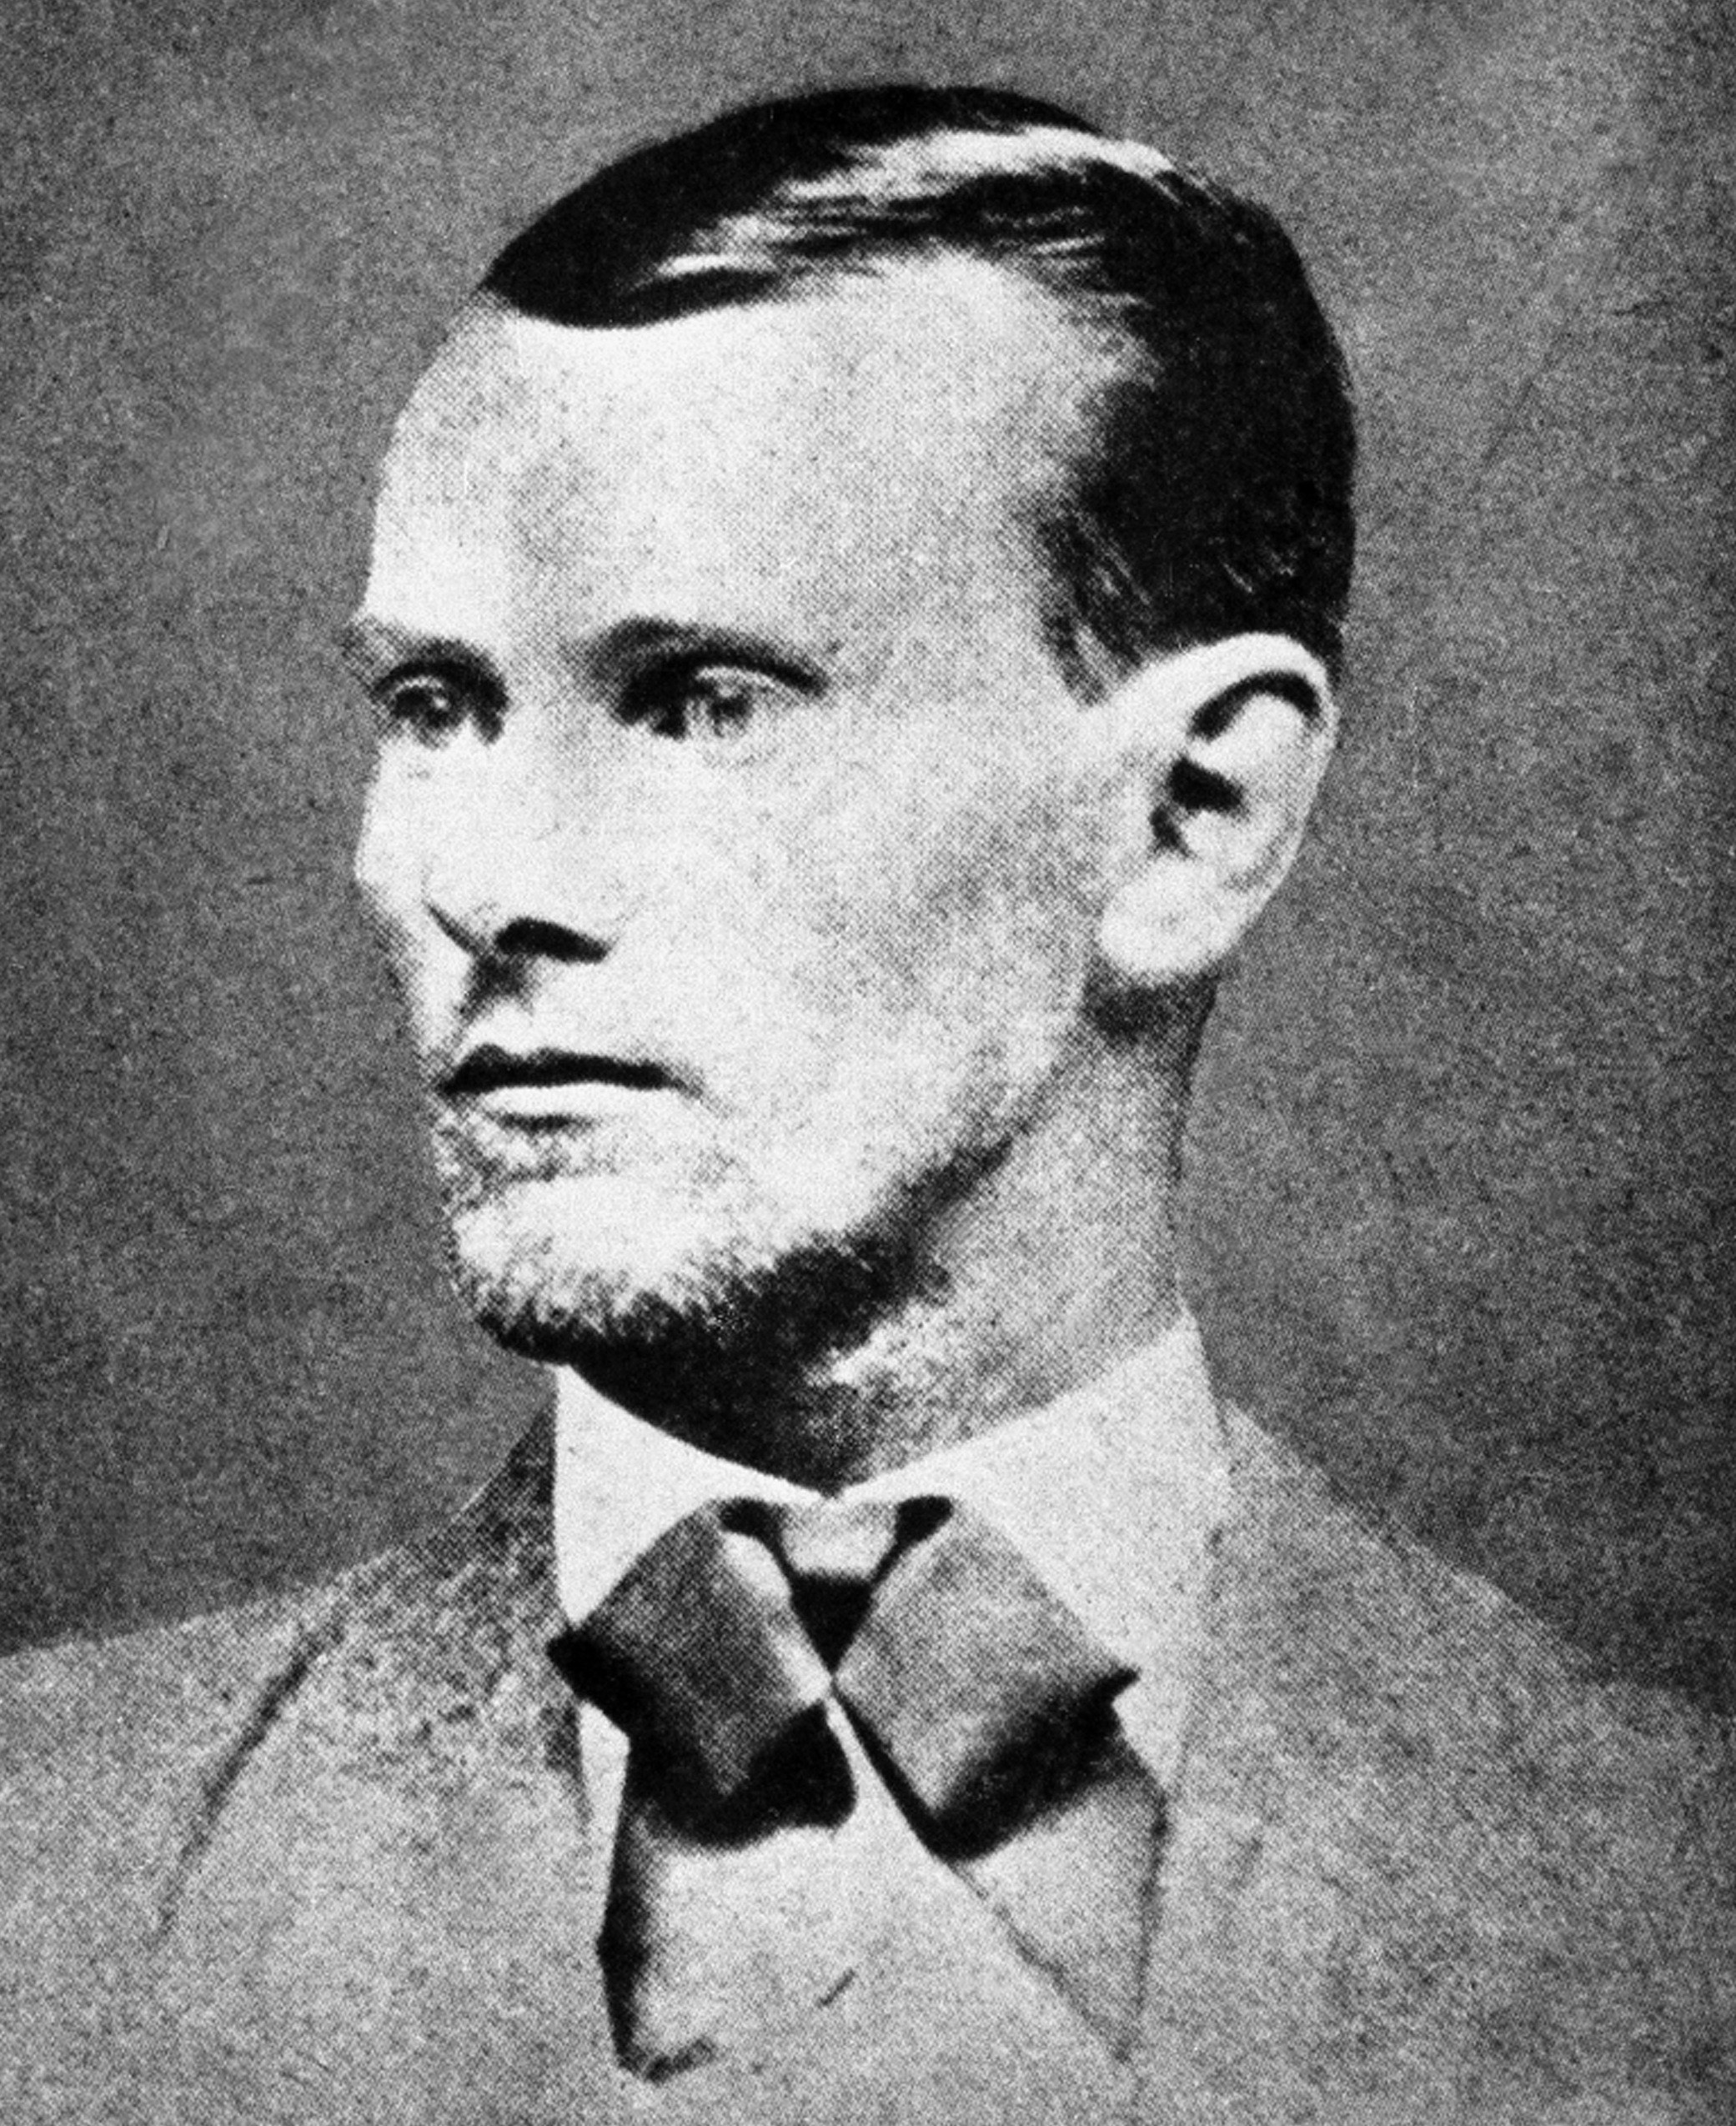 Jesse James | Known people - famous people news and ...